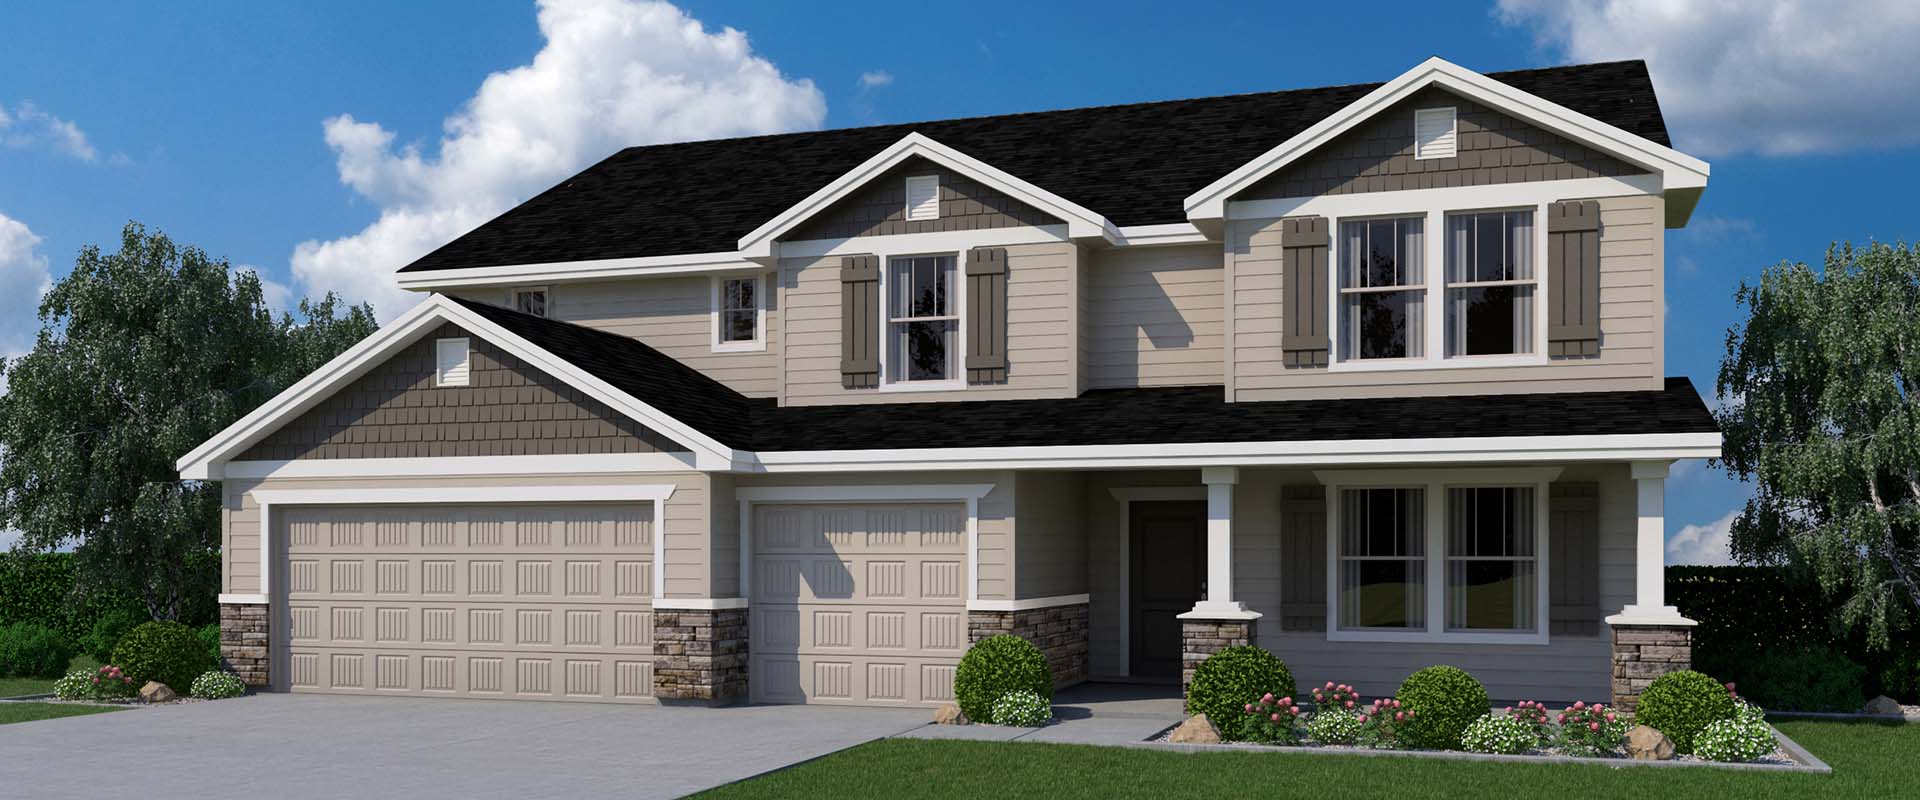 new-homes-boise-idaho-hubble-homes_0011_Topaz Craftsman 3rd Car pack 52.jpg